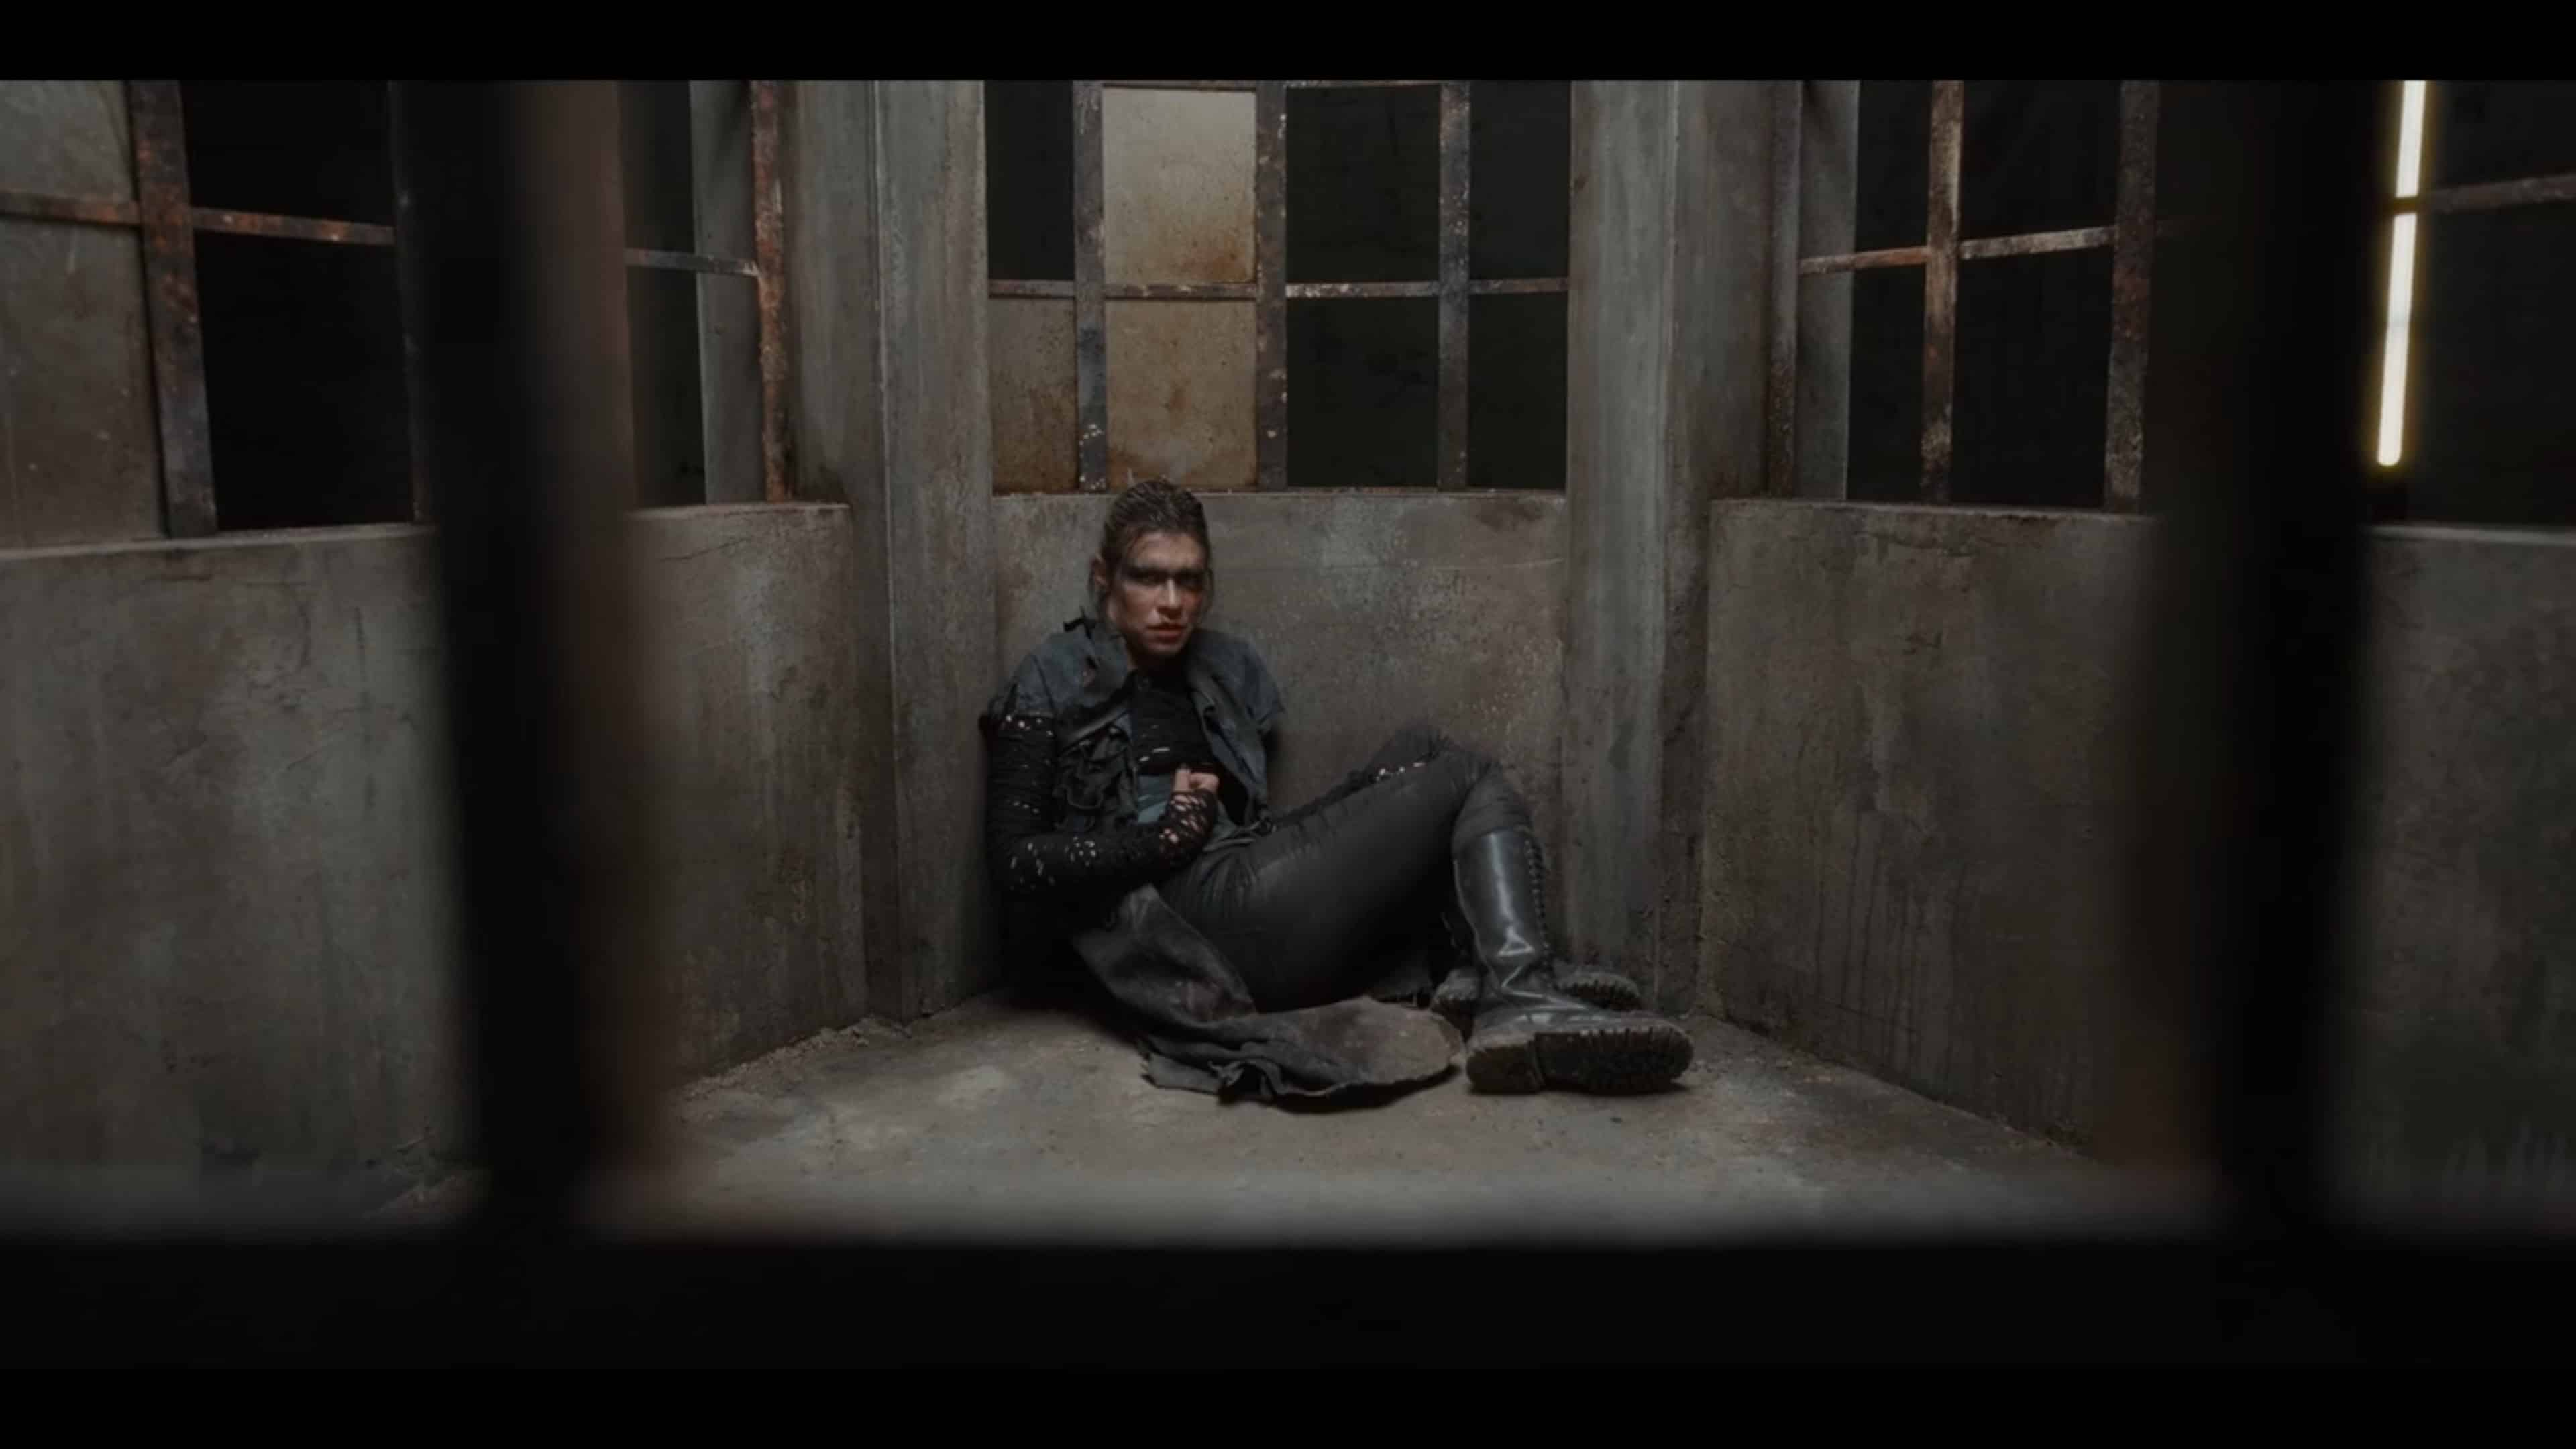 Grieta (Ana Ularu) in a cell